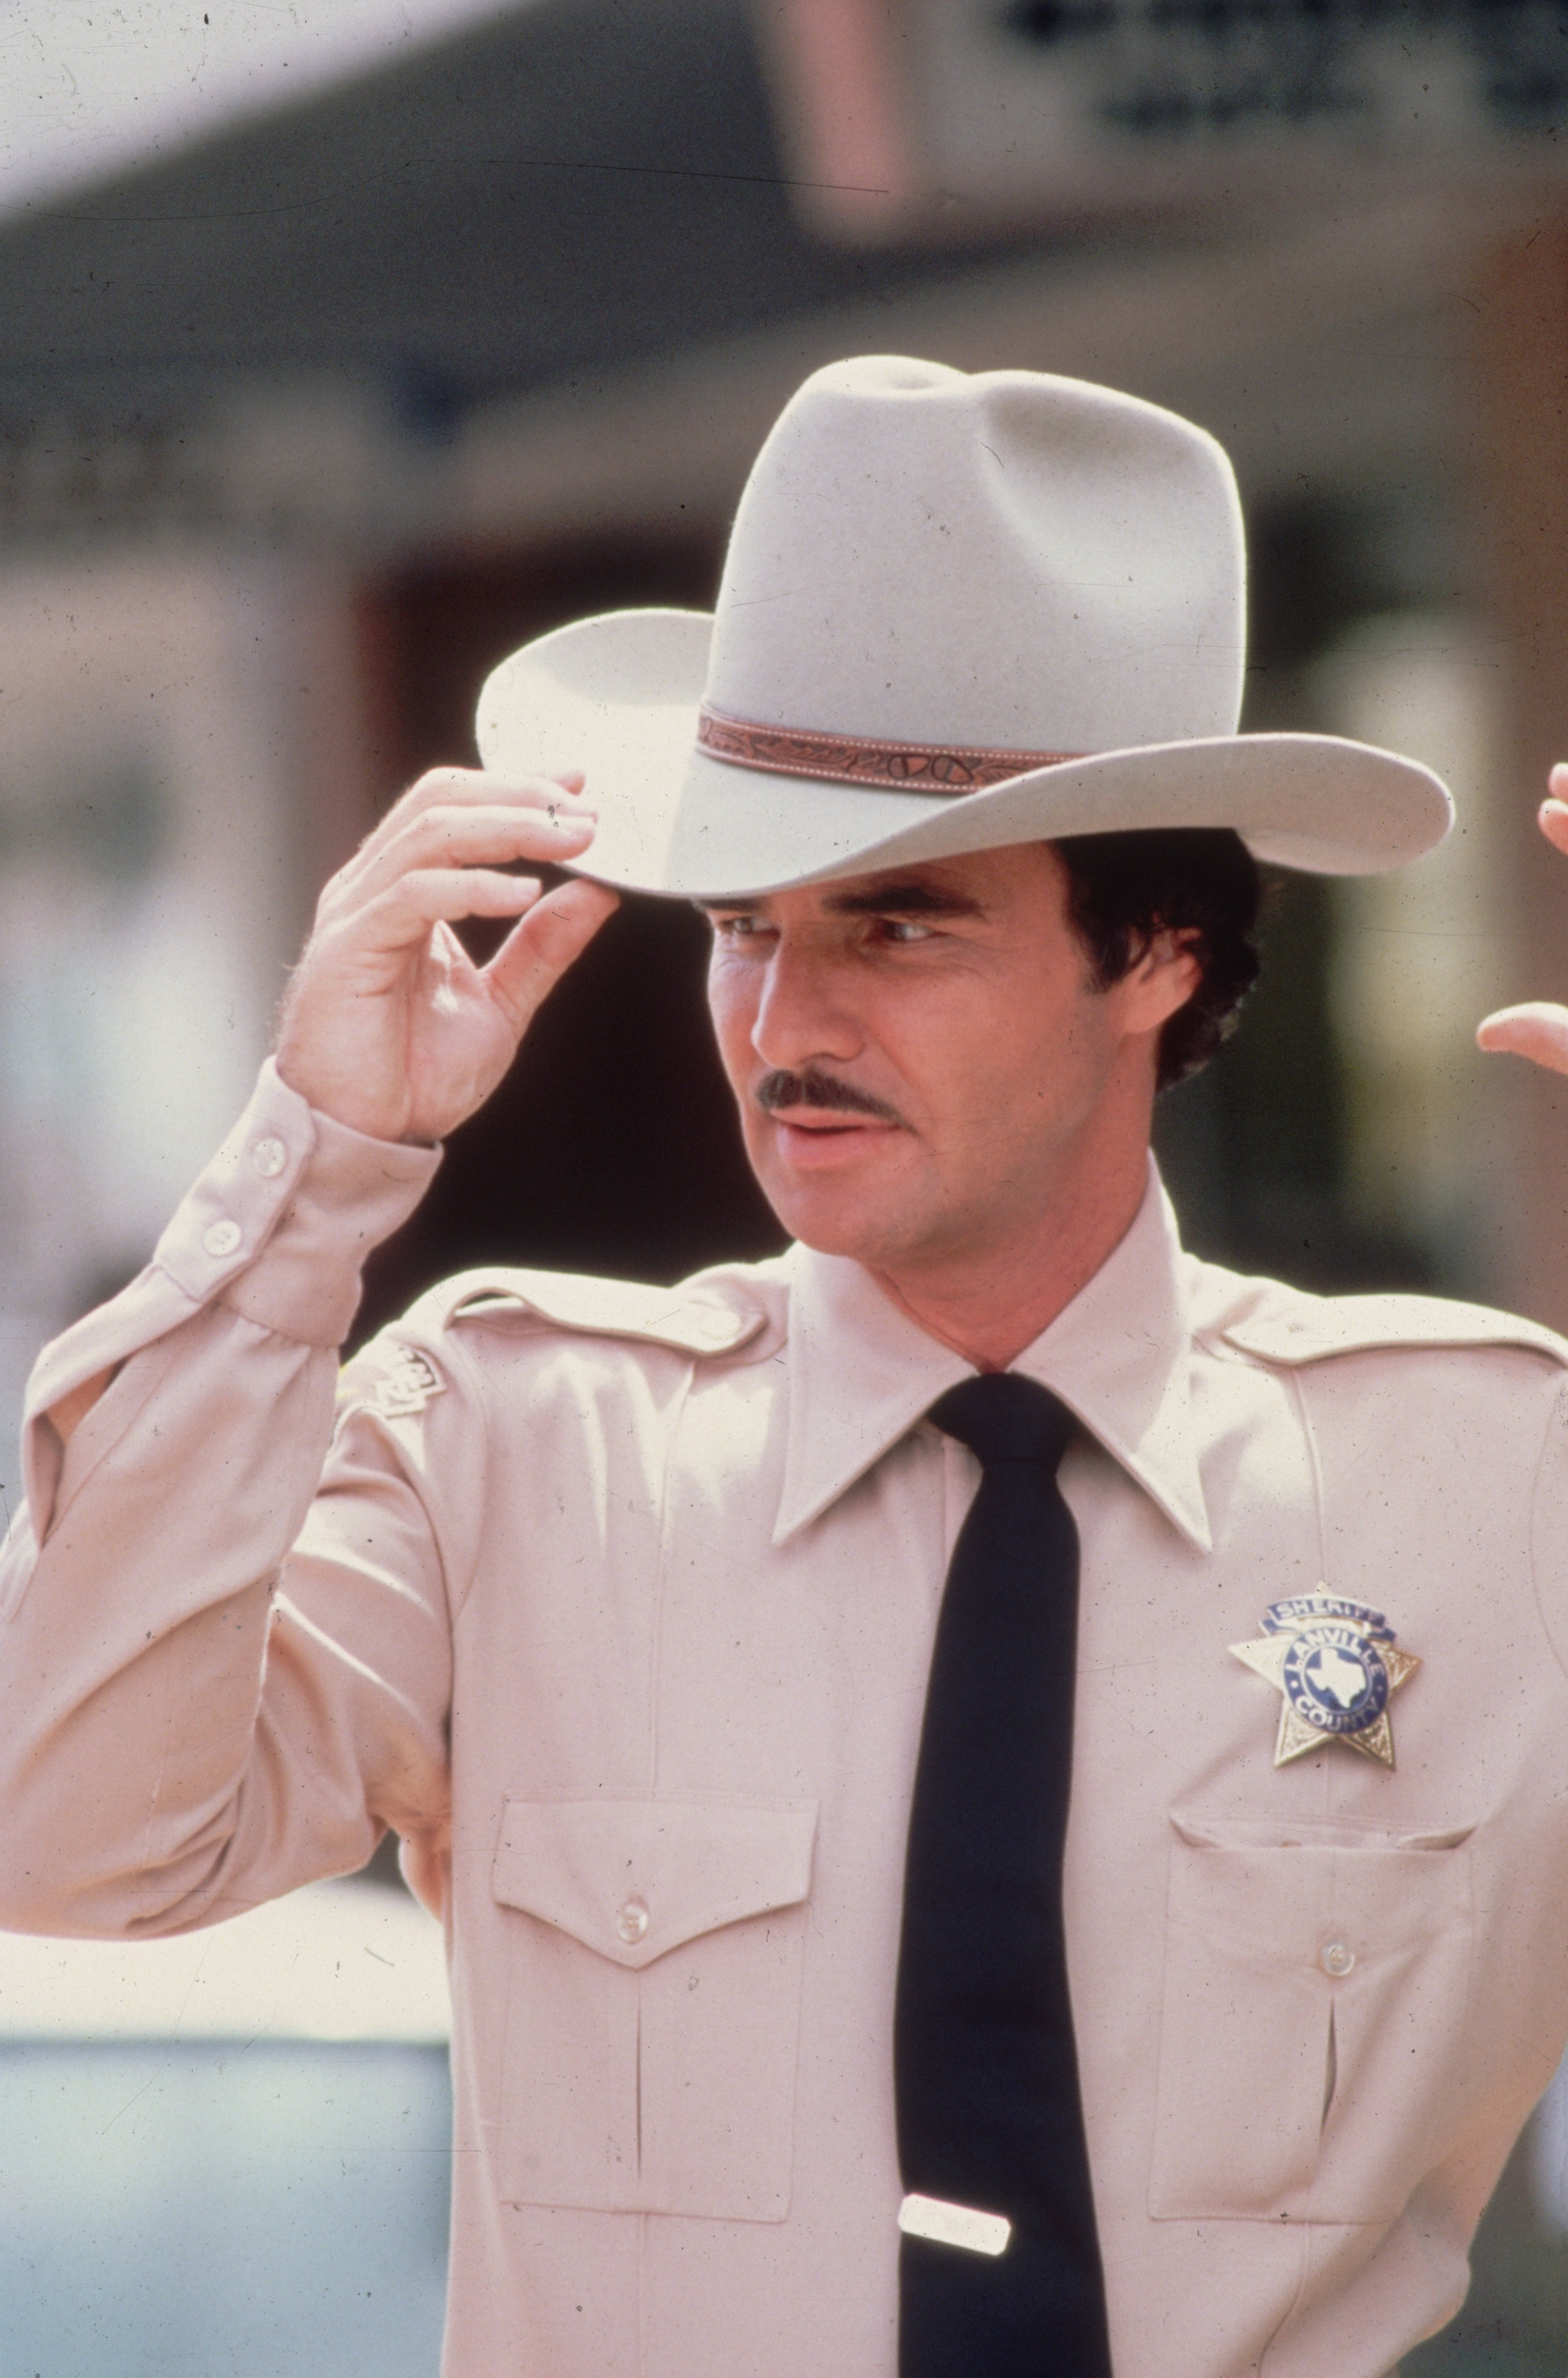 Burt Reynolds dressed as a sheriff circa 1985. | Source: Getty Images